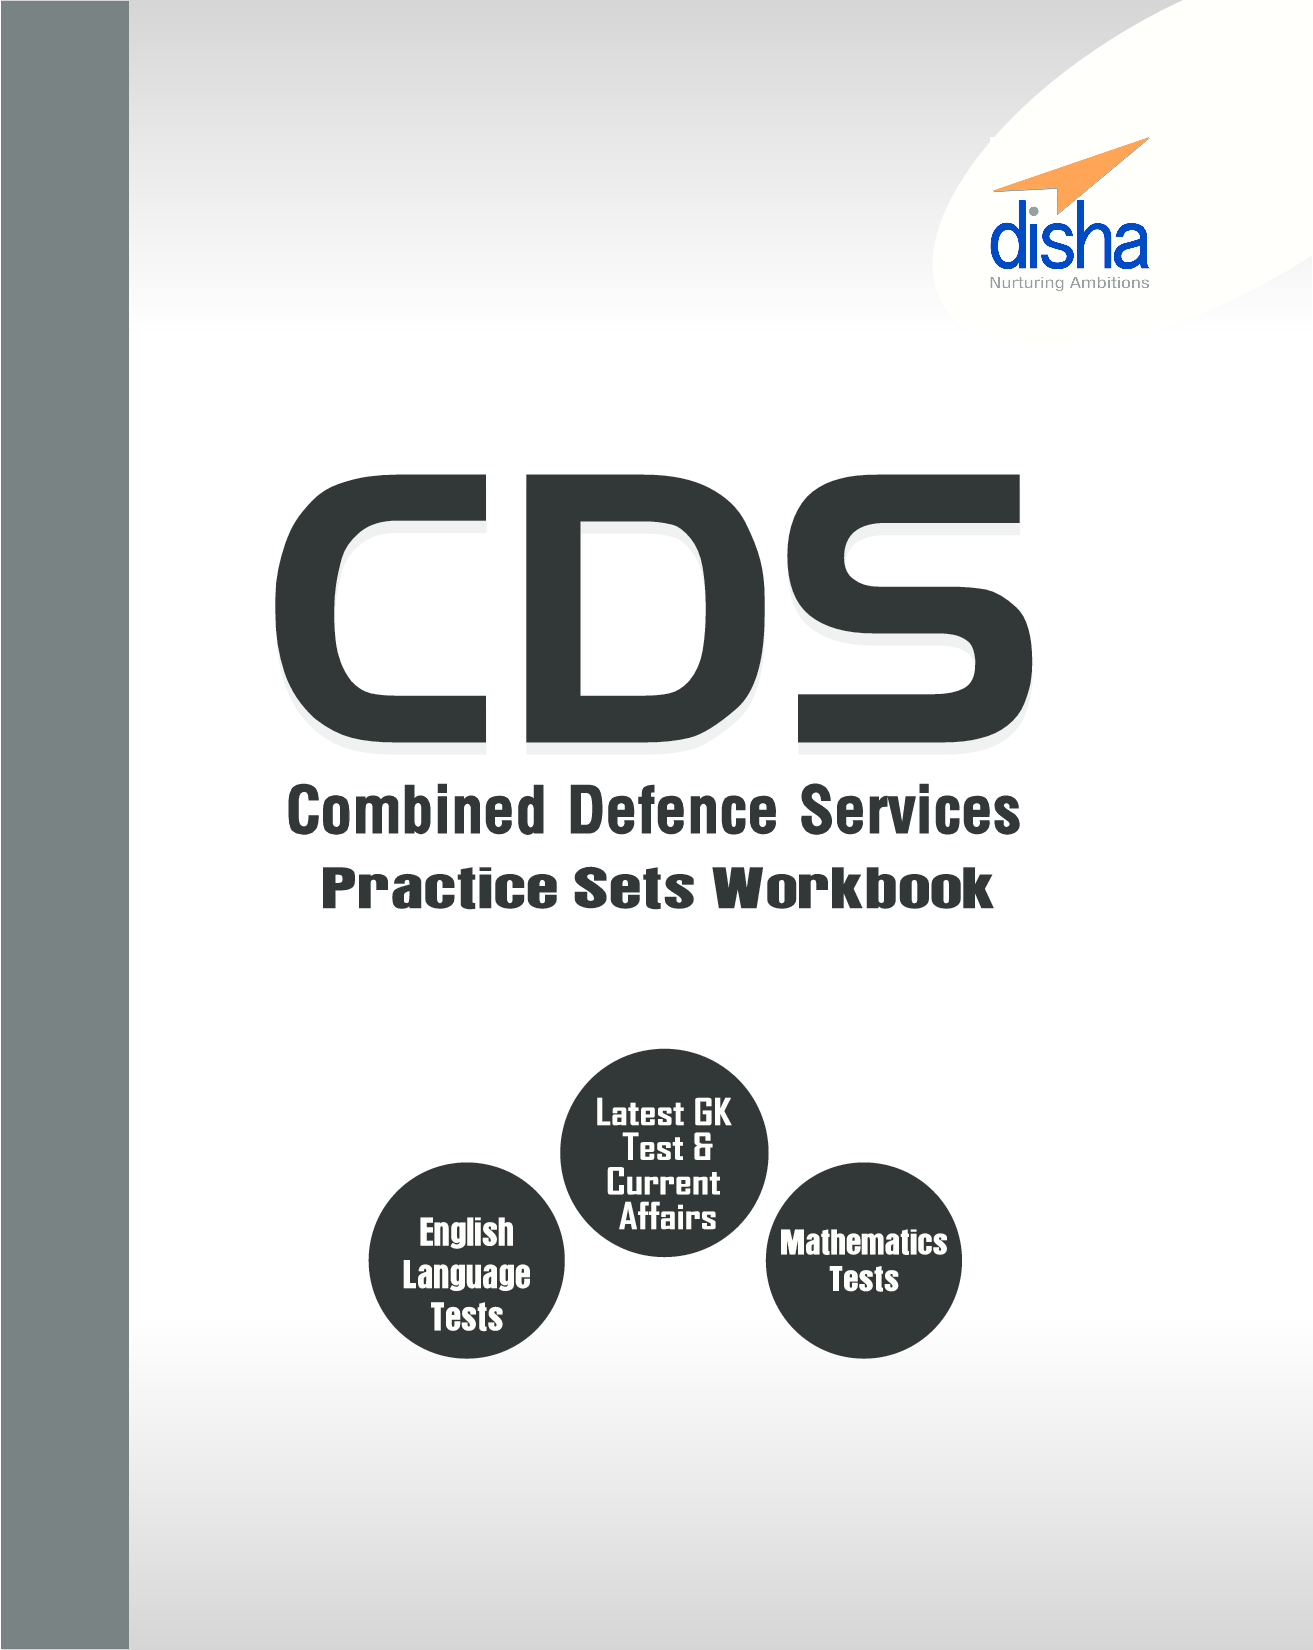 CDS Combined Defence Services 5 Practice Sets Workbook - Page 2